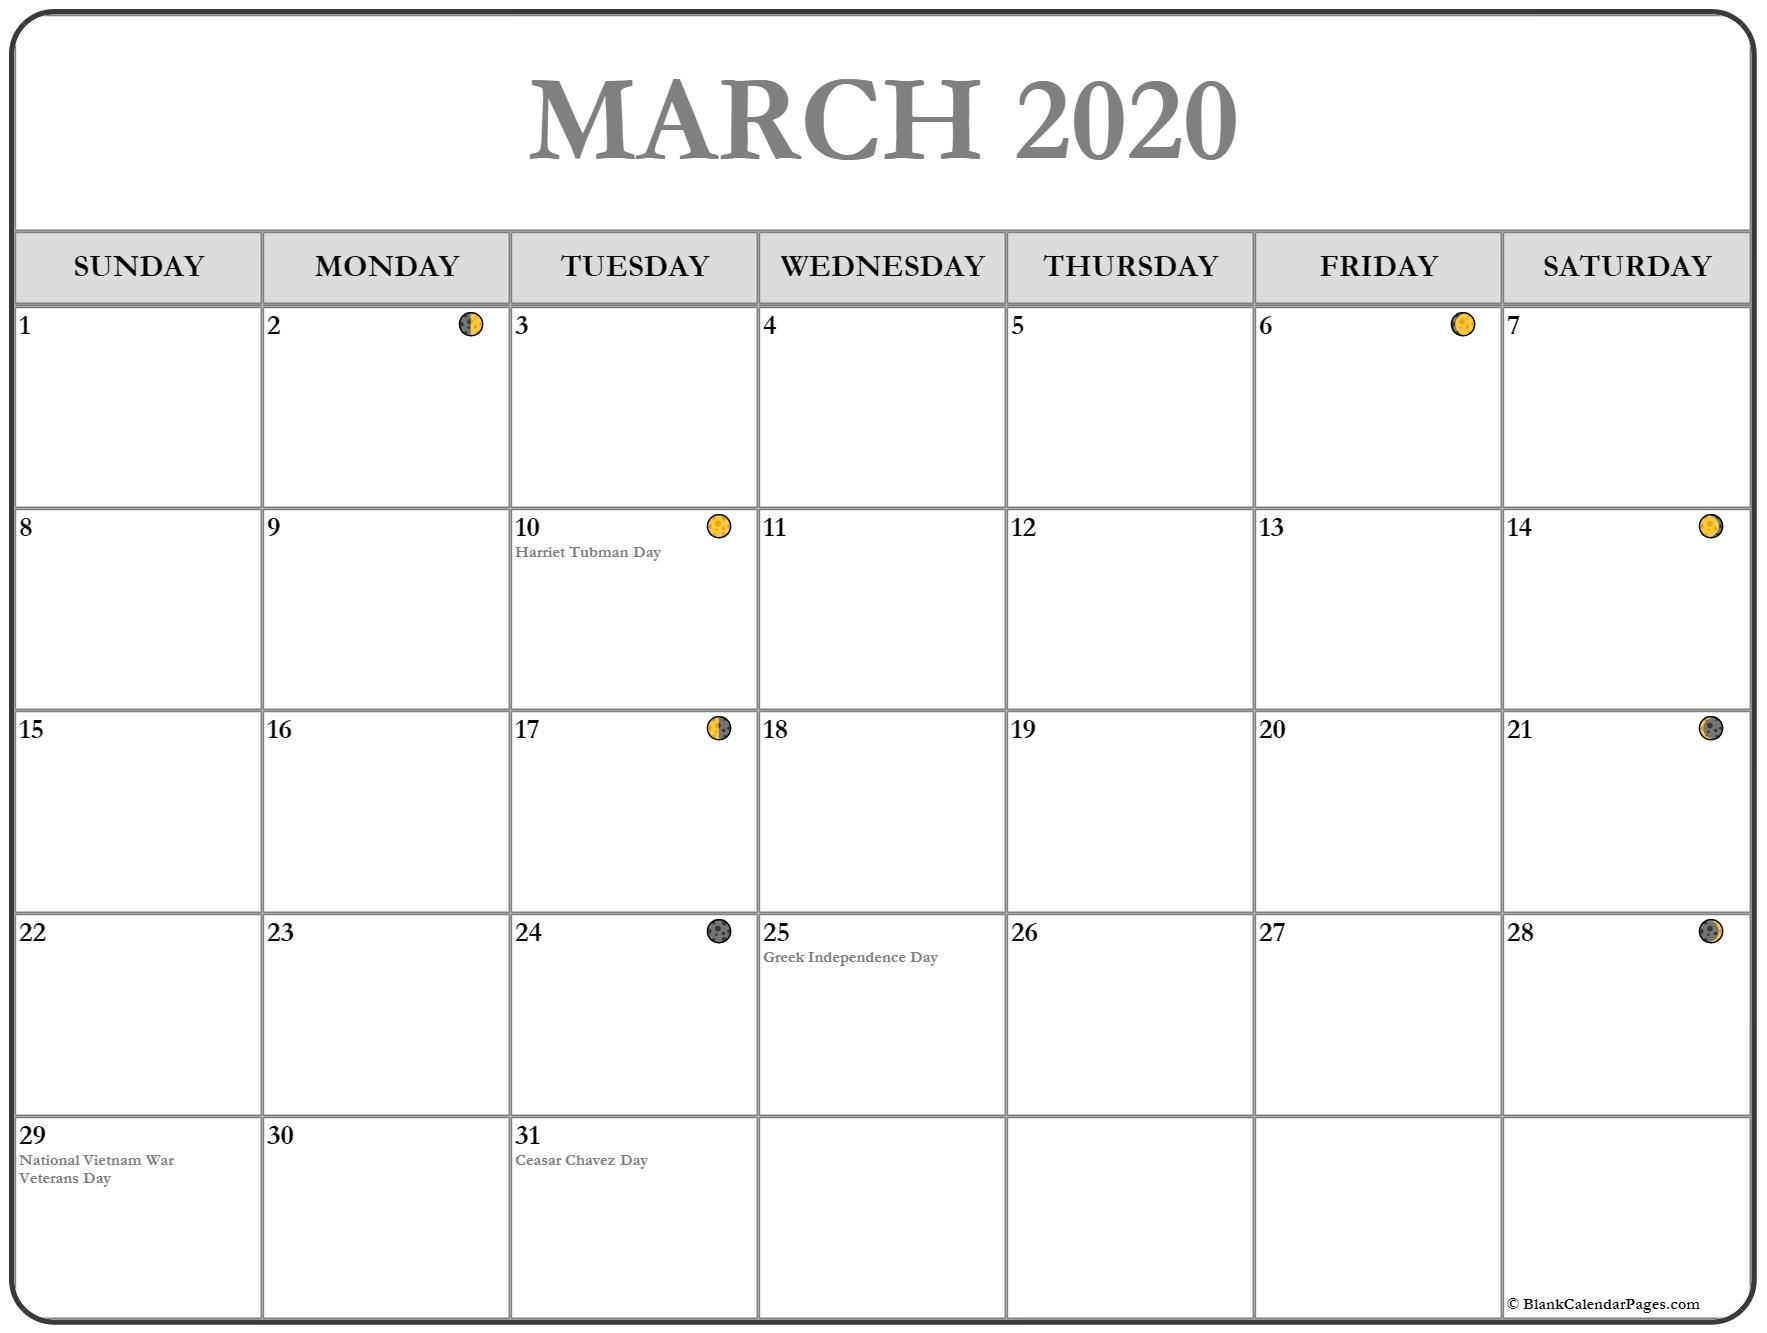 March Moon Calendar 2020 Template